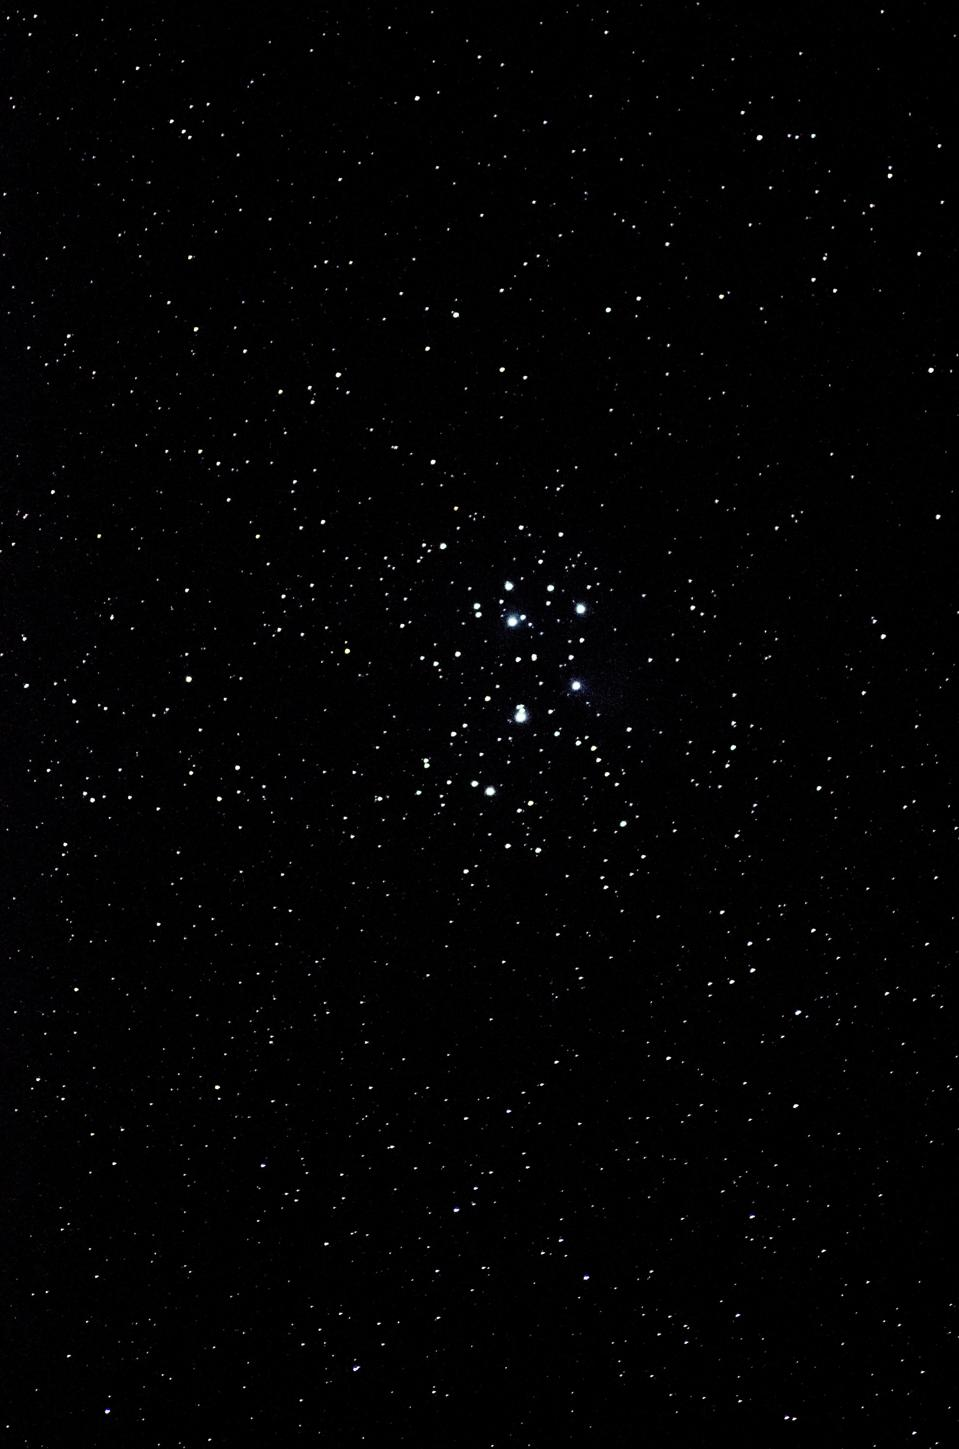 The Beehive Cluster in the constellation of Cancer.